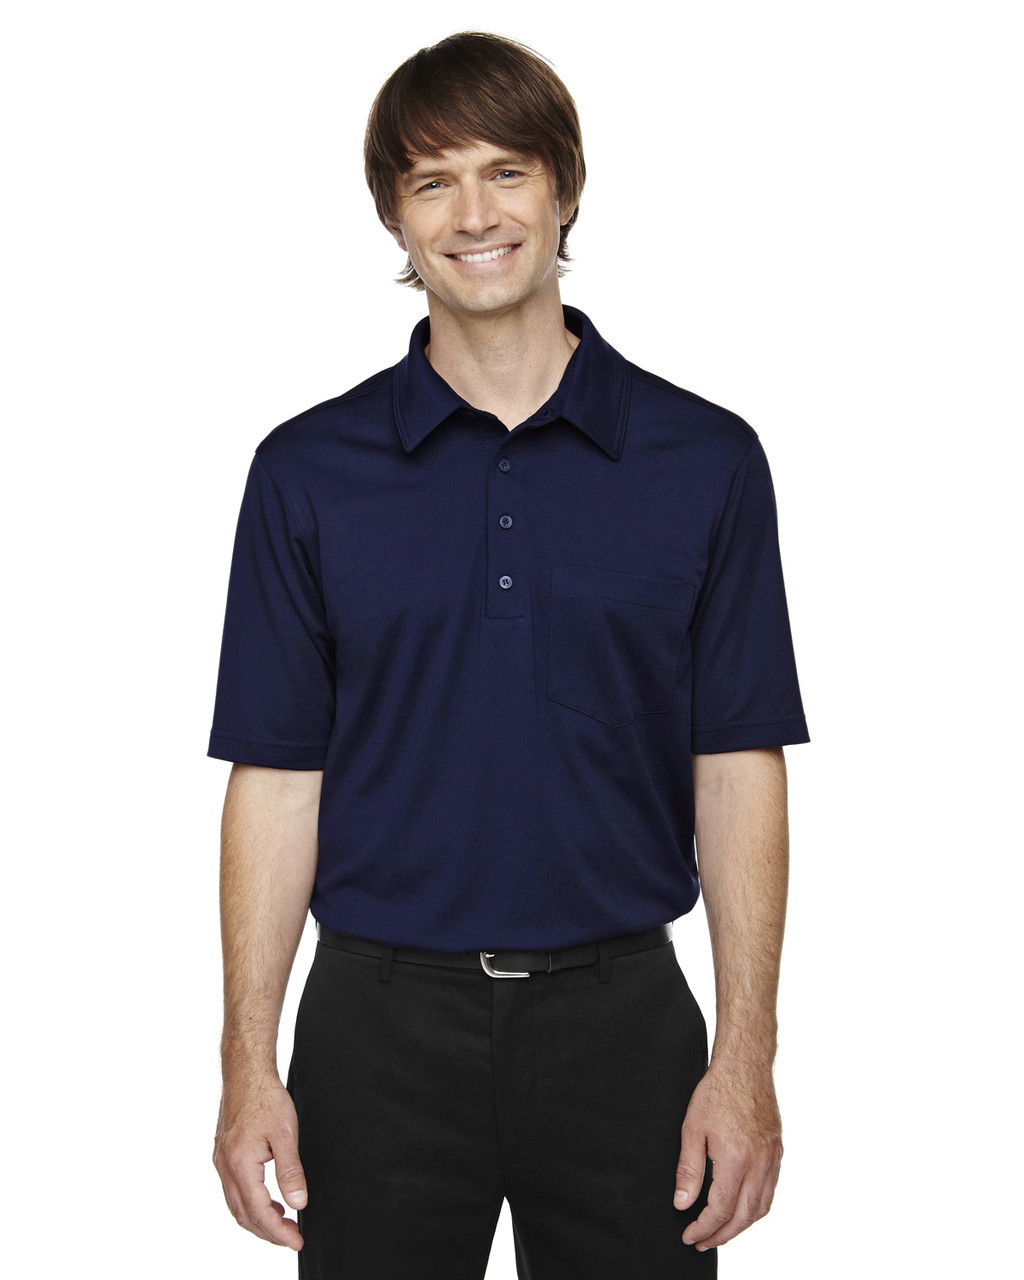 Classic Navy - 85114 Ash City - Extreme Eperformance Men's Shift Snag Protection Plus Polo Shirt